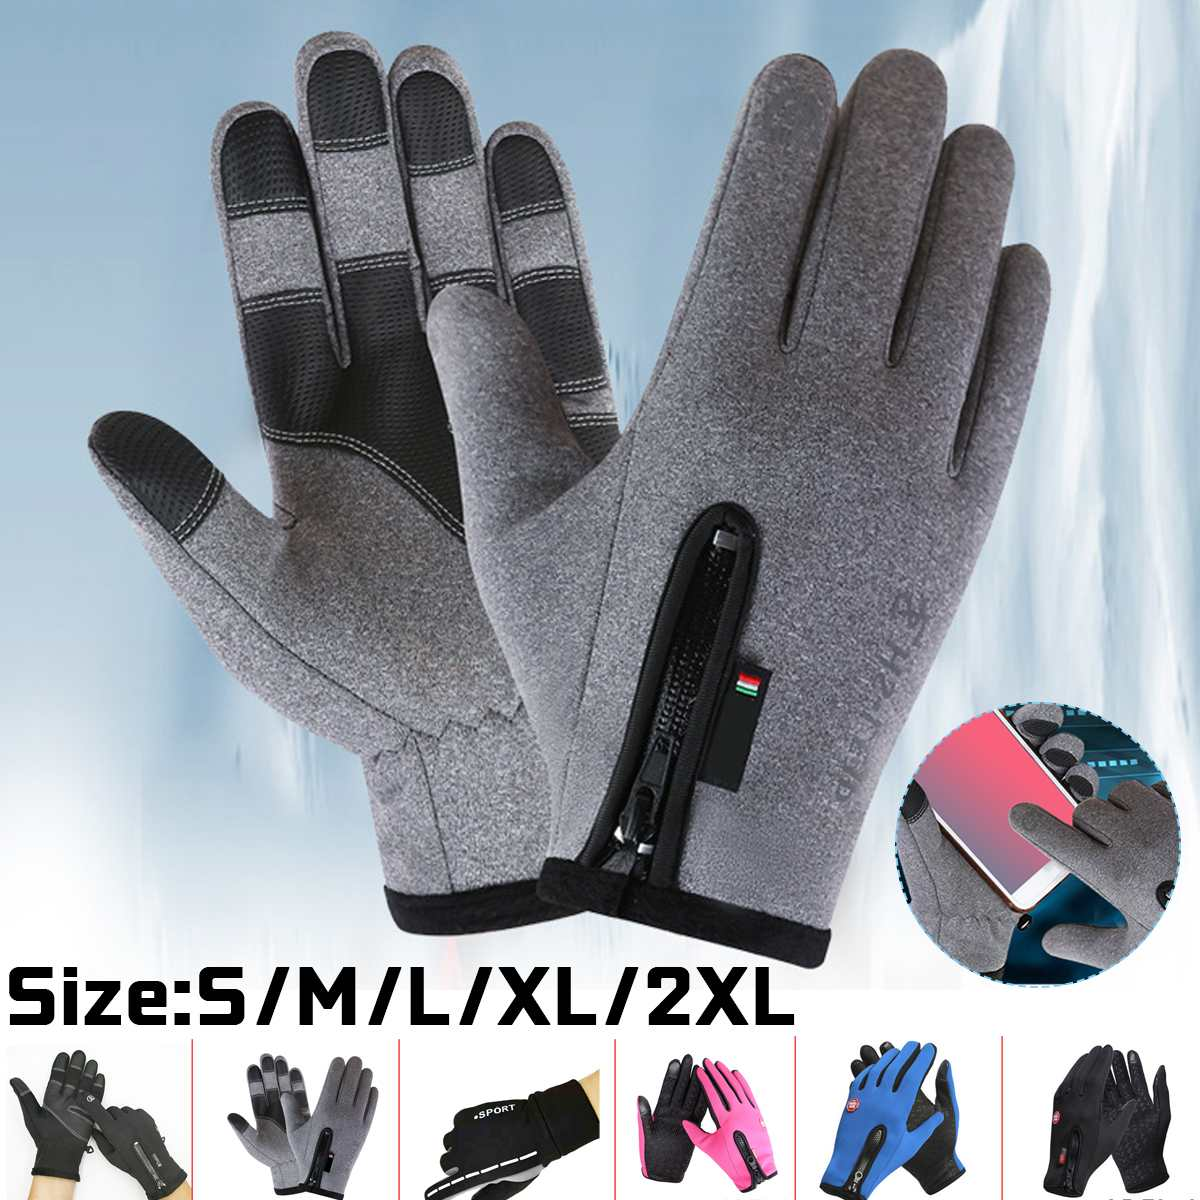 Heated Waterproof Winter Gloves Fluff Warm Gloves Touch Screen Reflective Anti Slip Sport Riding Cycling Skiing Gloves Unisex